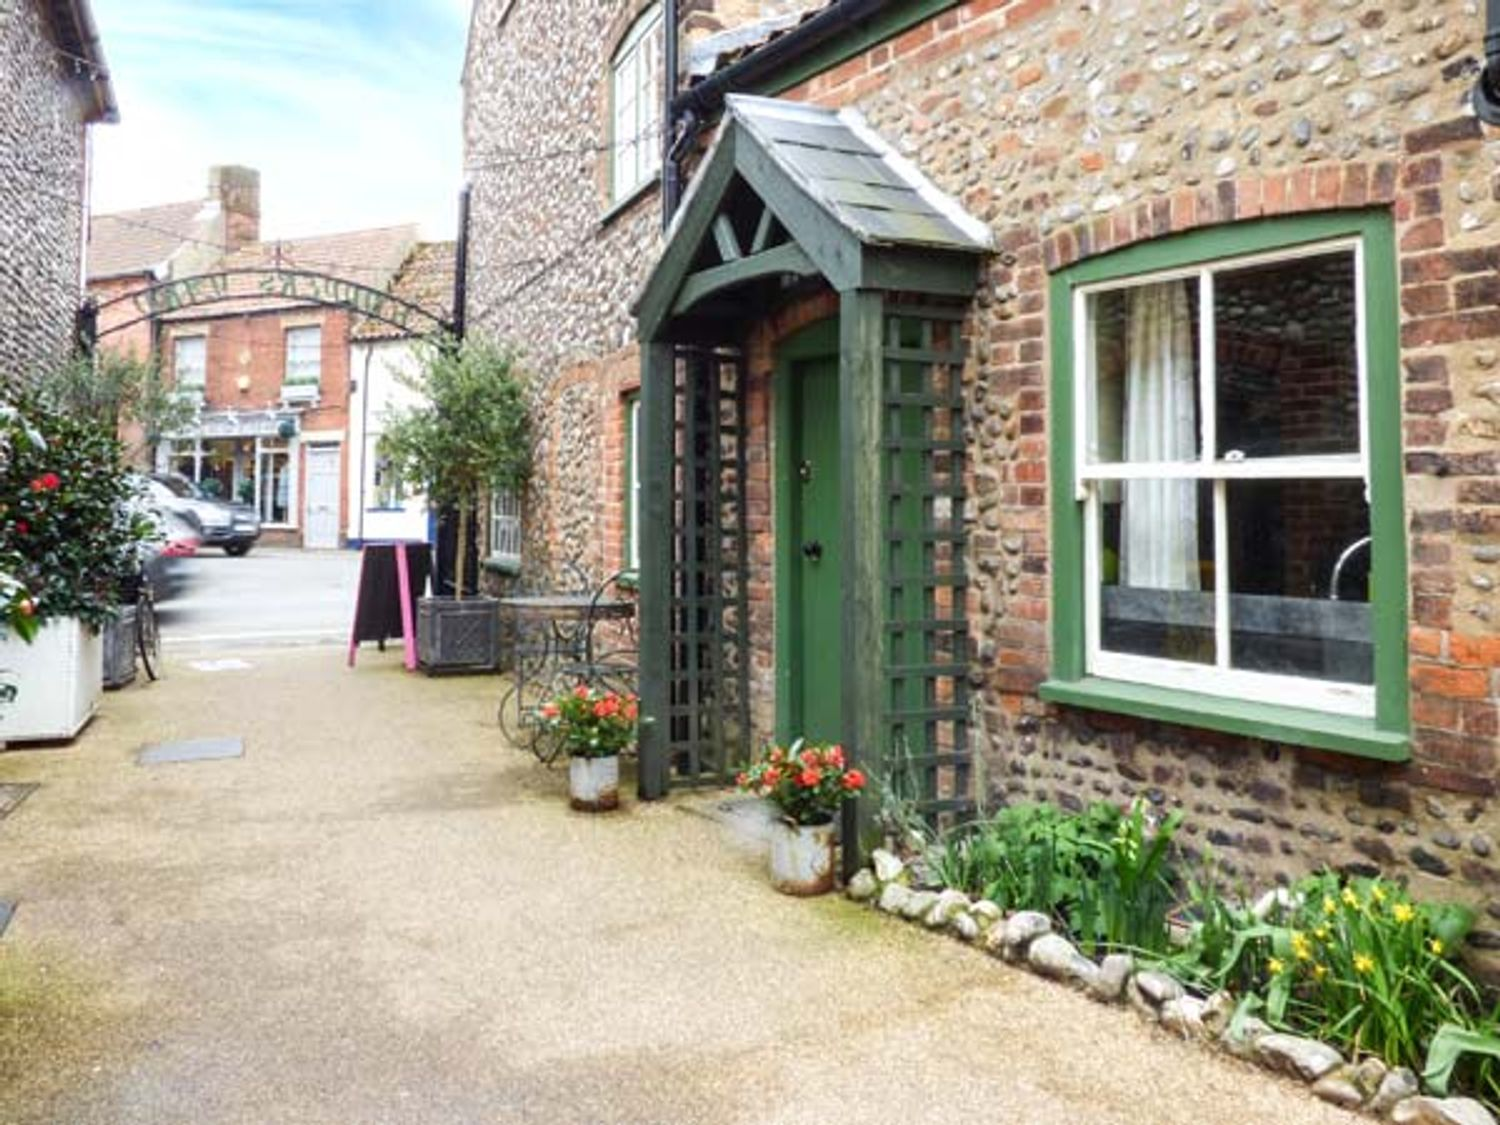 Holiday Cottages in Norfolk: Old Paul Pry, Holt | Sykes Cottages